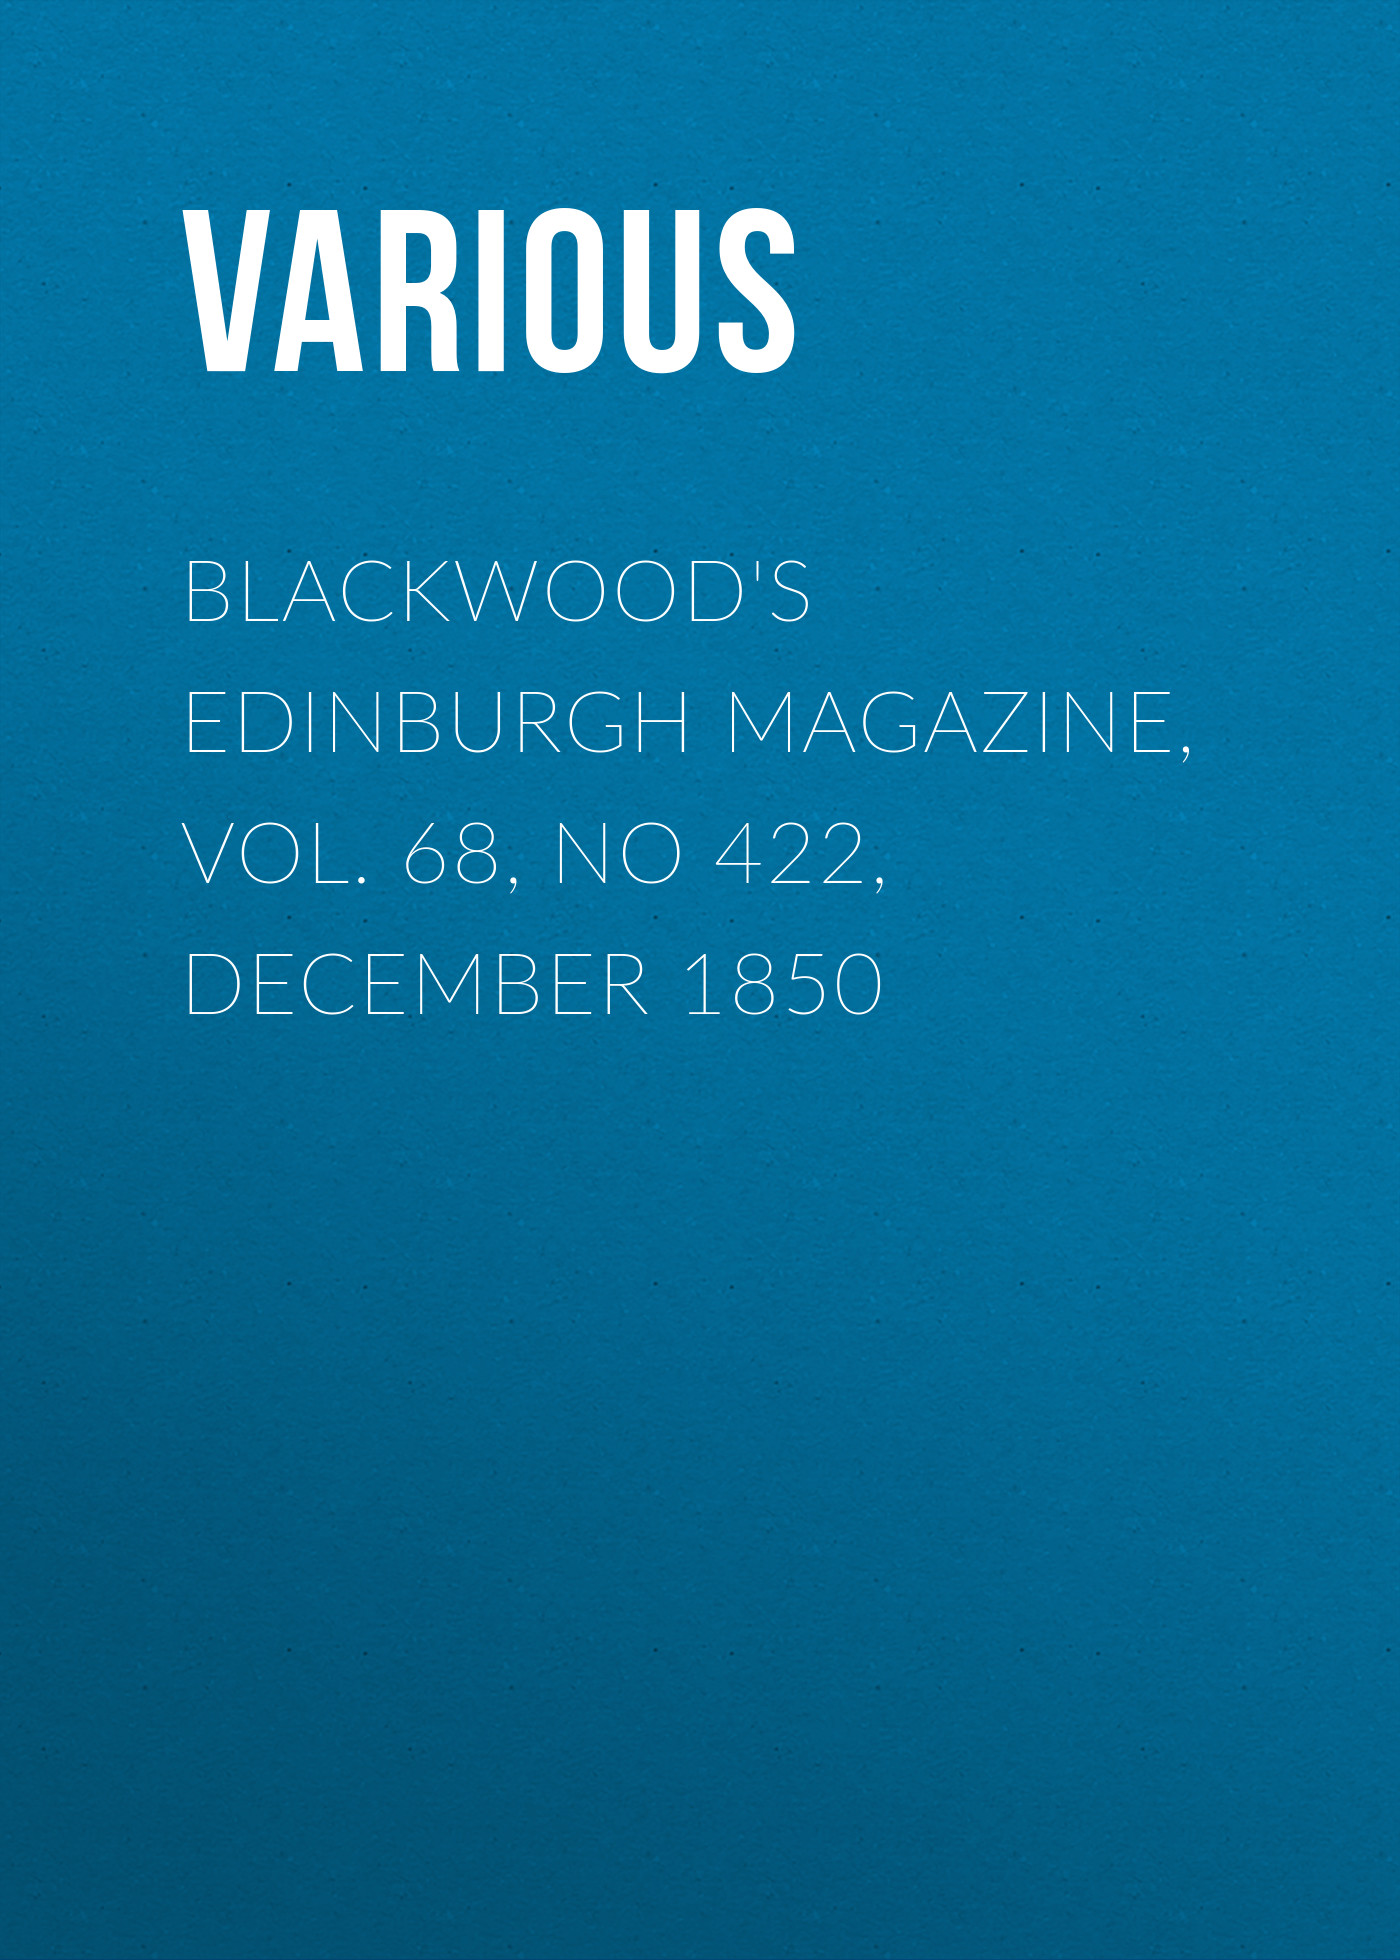 Various Blackwood's Edinburgh Magazine, Vol. 68, No 422, December 1850 various blackwood s edinburgh magazine volume 67 no 411 january 1850